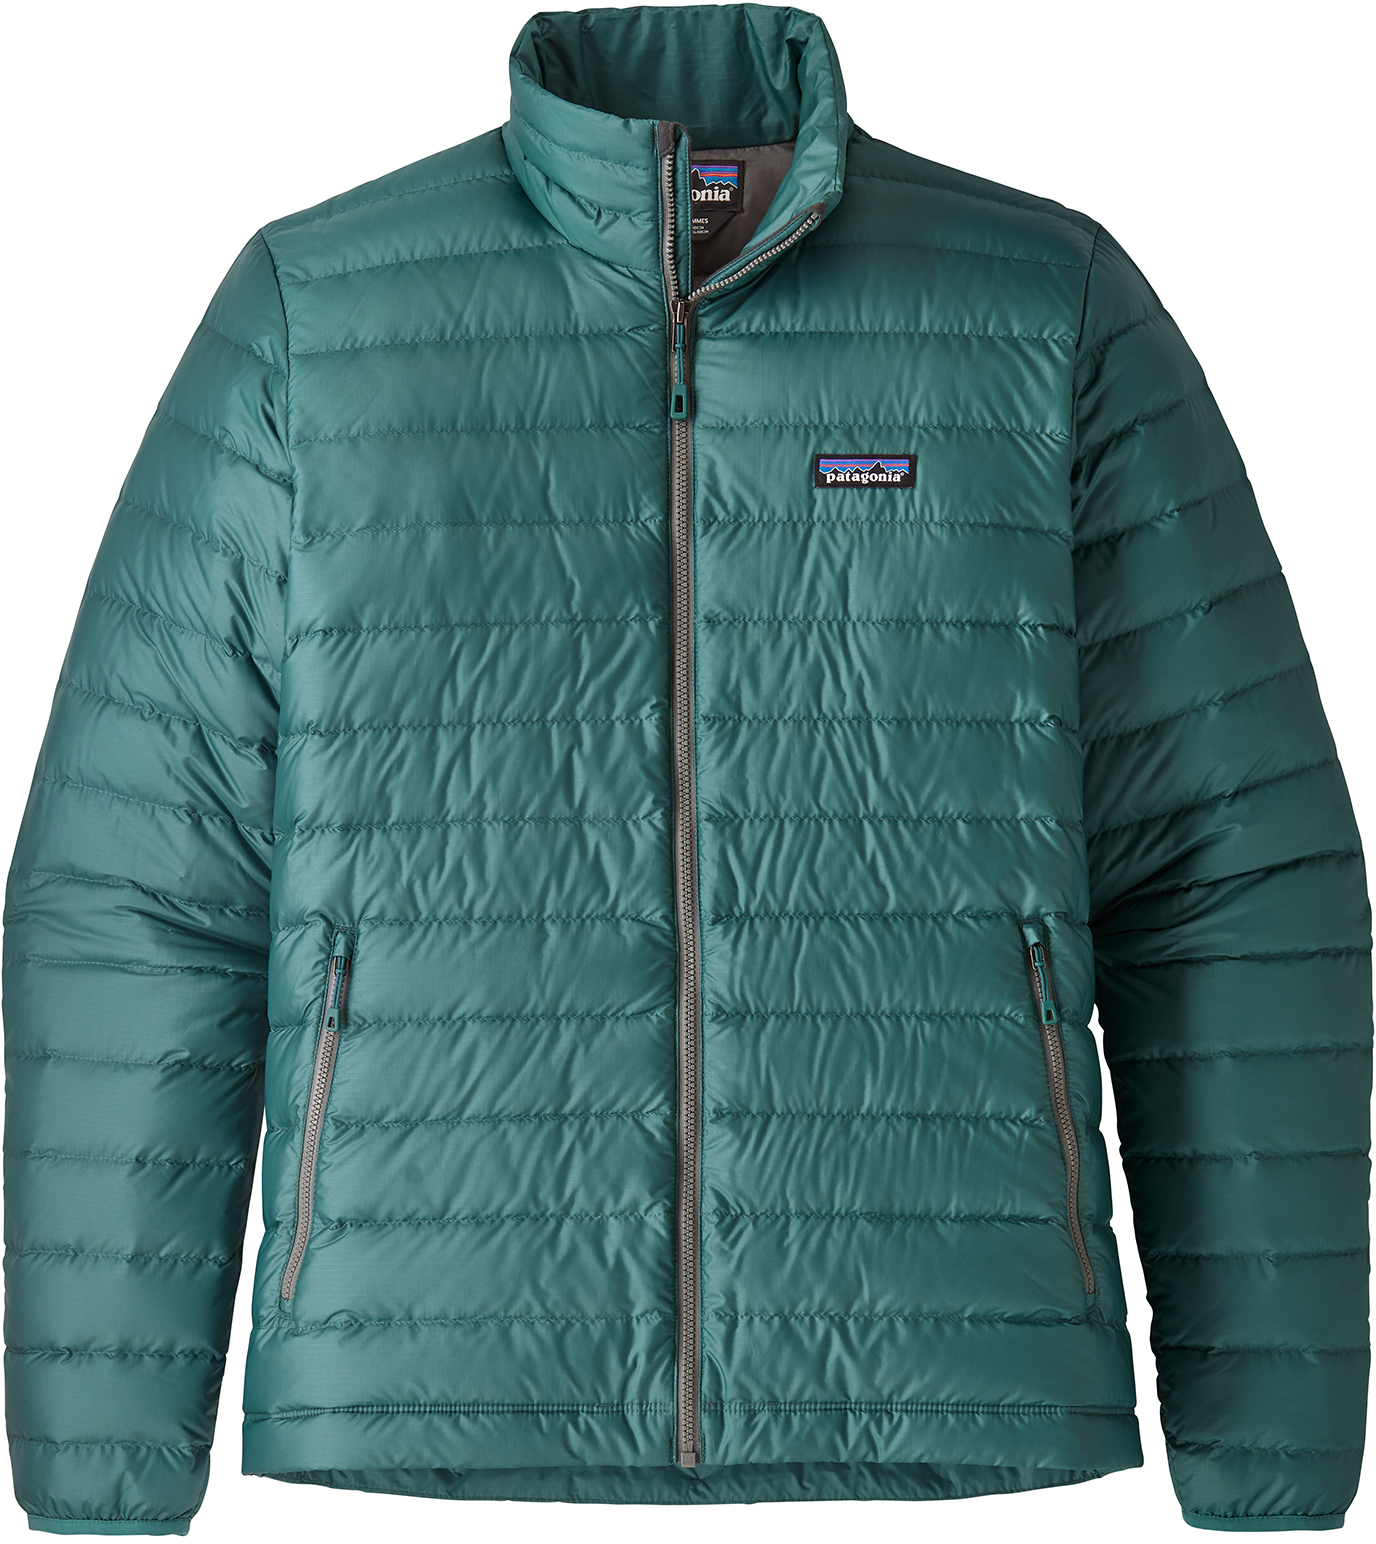 ee94ef393 Ski and snowboard jackets | MEC